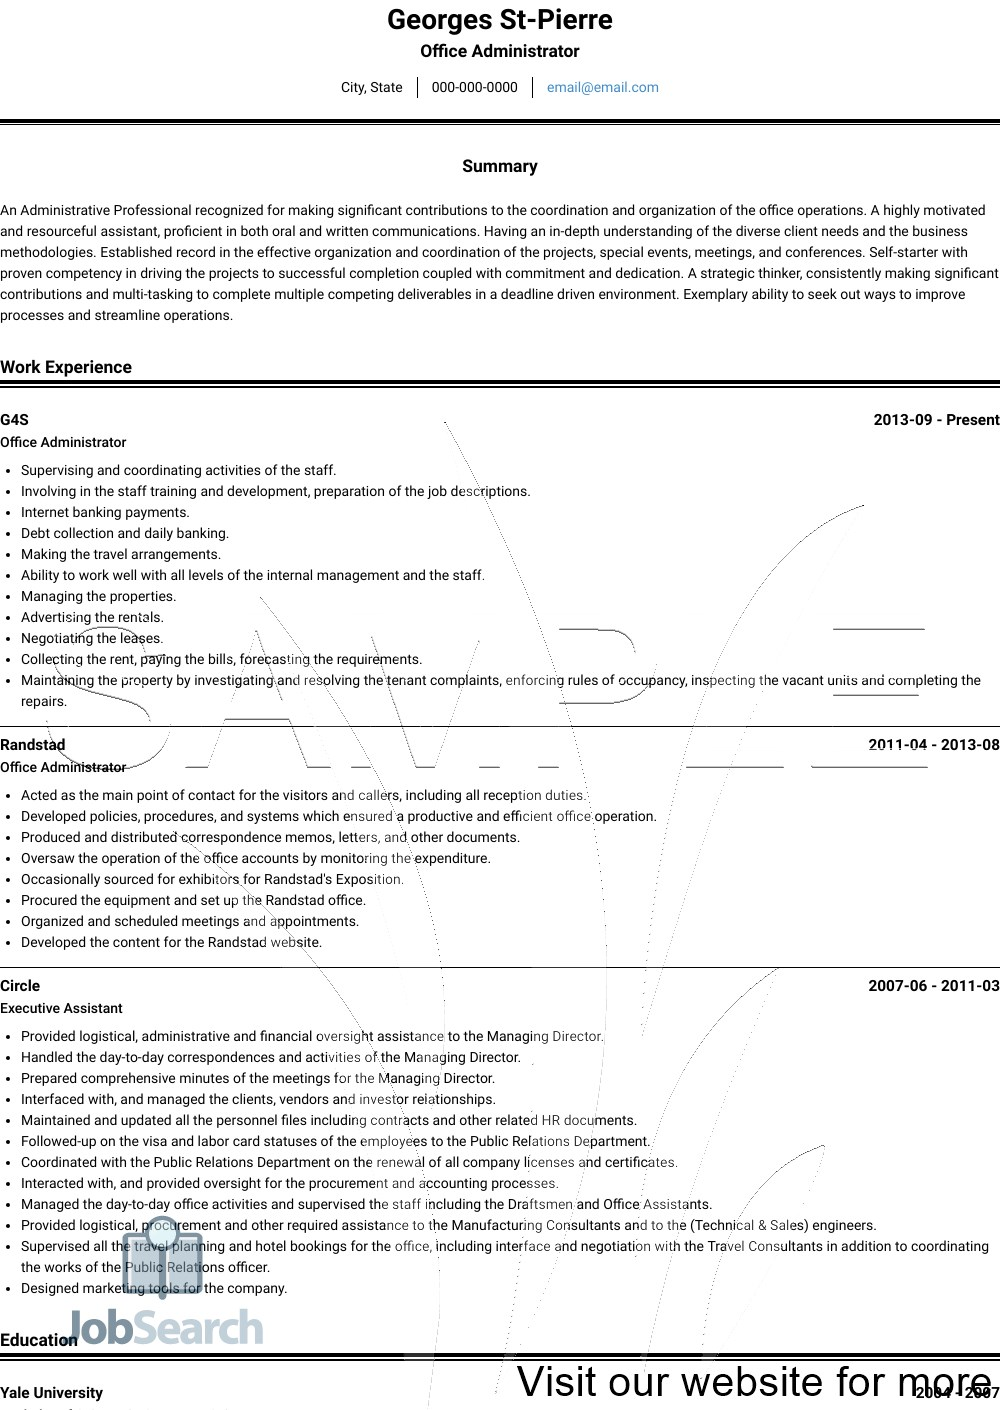 Office Administrator Resume Sample 2020 Office Administrator Resume Sample Office Administrator Curricu In 2020 Job Resume Template Job Resume Resume Template Free